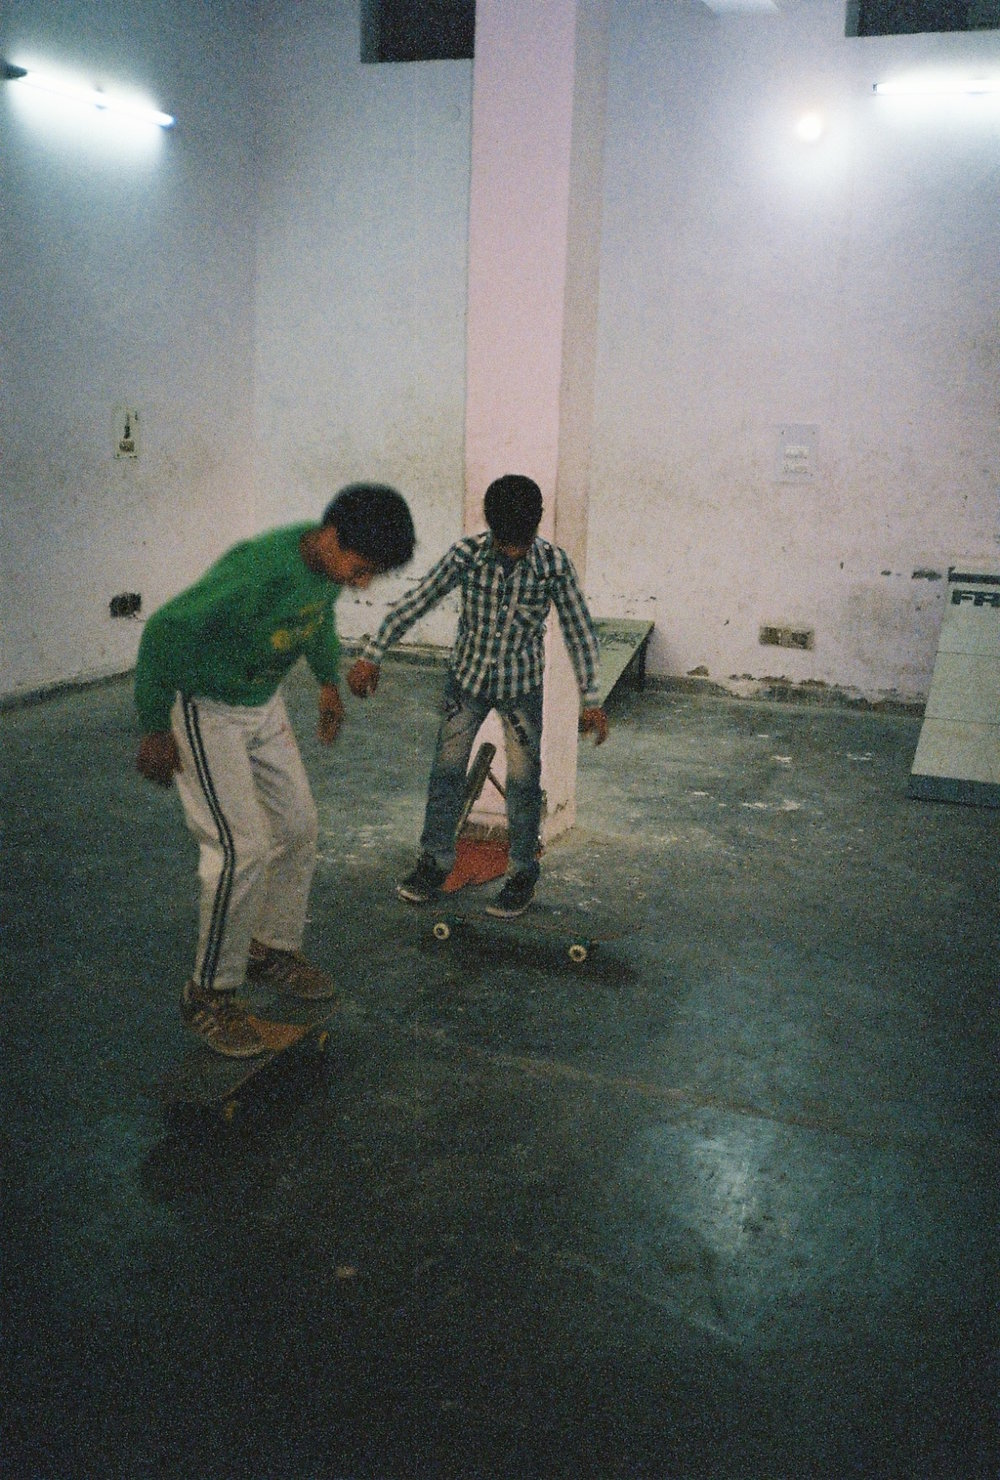 KIDS SKATING IN A MAKE SHIFT PARK IN A WAREHOUSE BASEMENT IN THE OUTER SUBURBS OF NEW DELHI.jpg